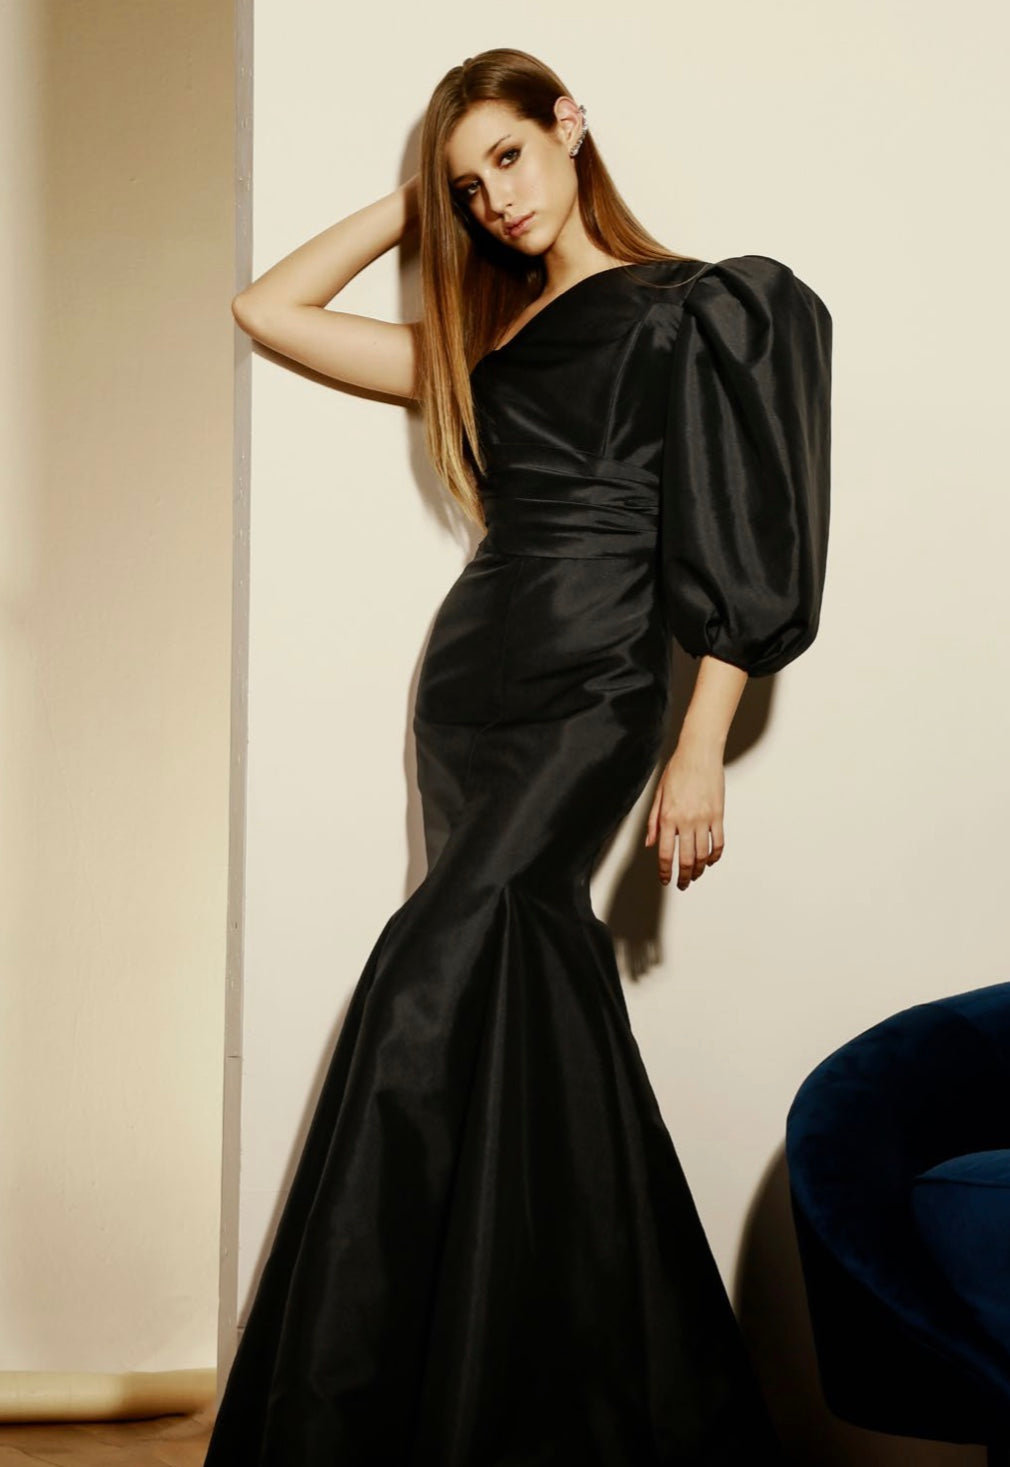 BLACK GOWN W/ SINGLE SLEEVE & BUTTONS DETAIL